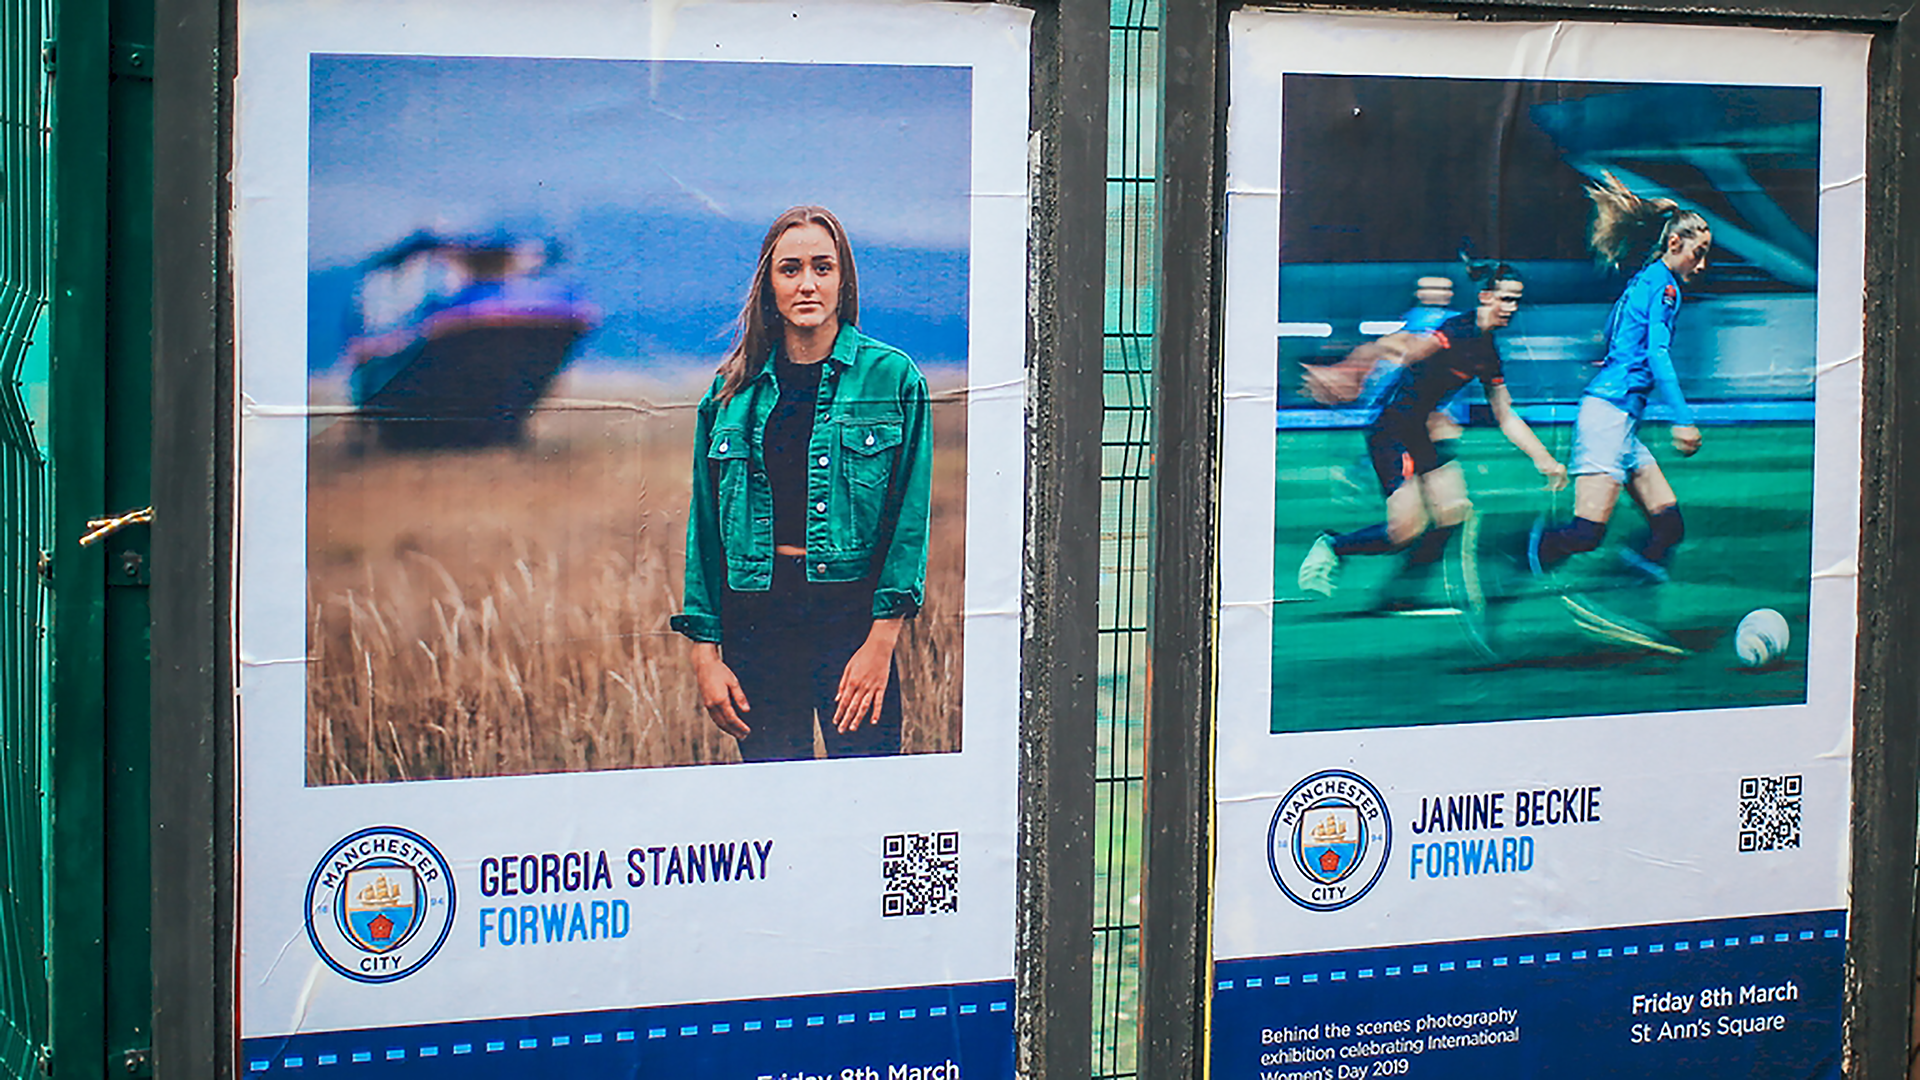 Manchester City women's photo exhibition